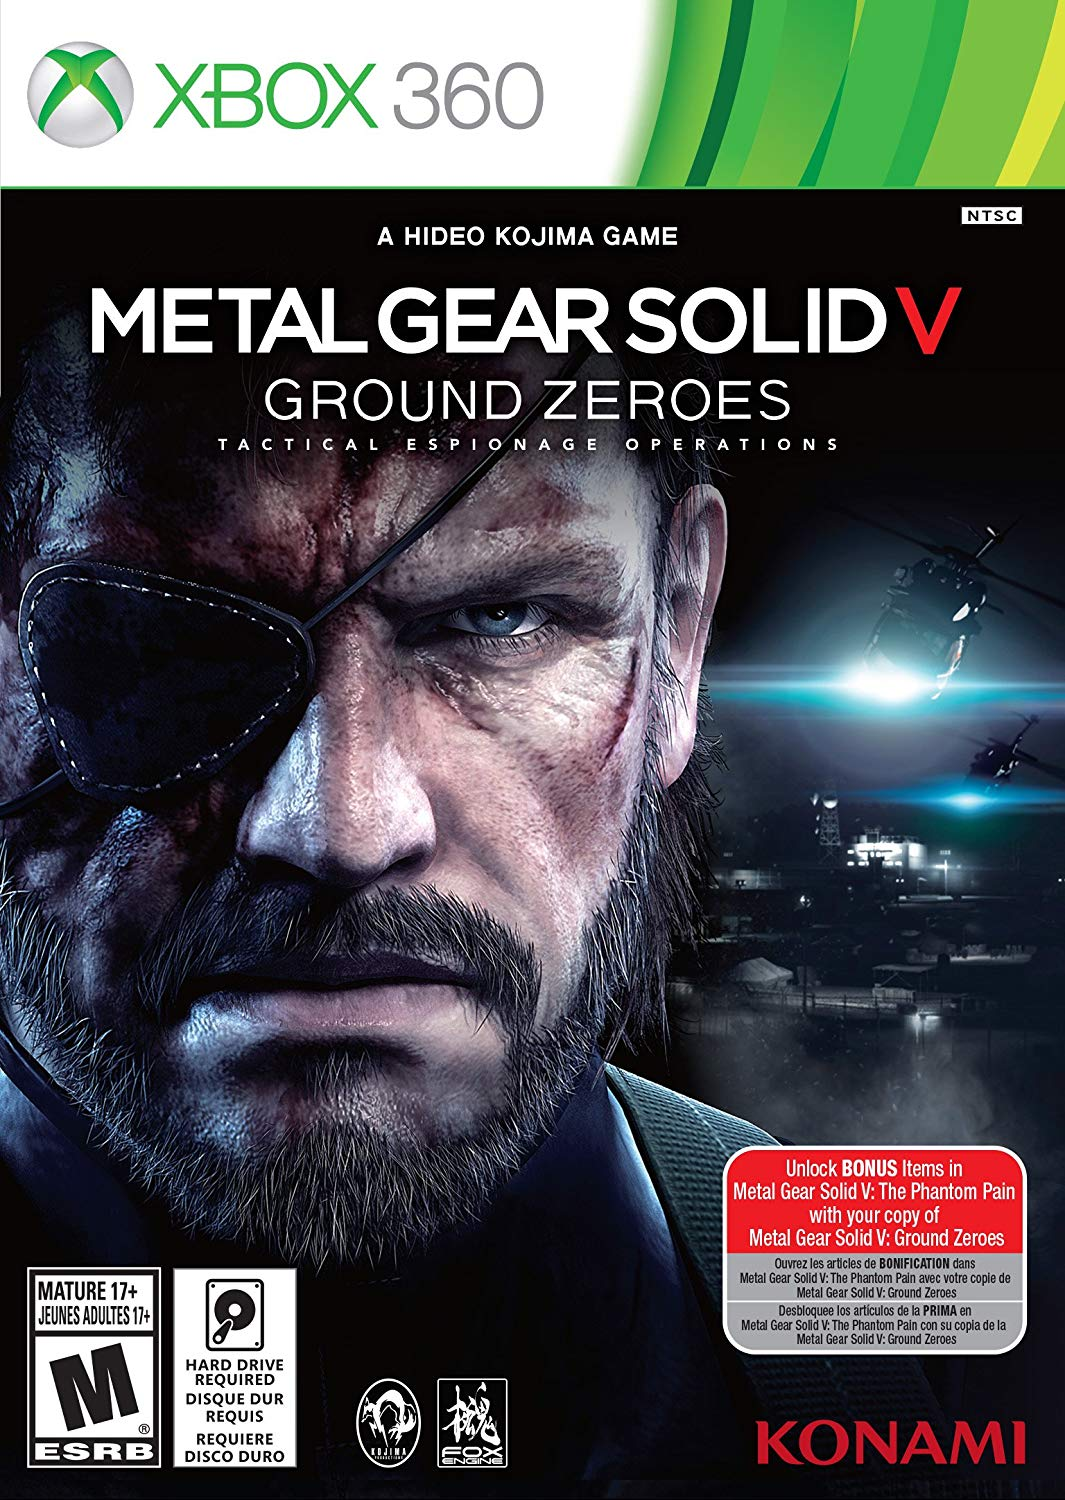 MGS V Ground Zeroes + DiRT 3 (XBOX 360) General account